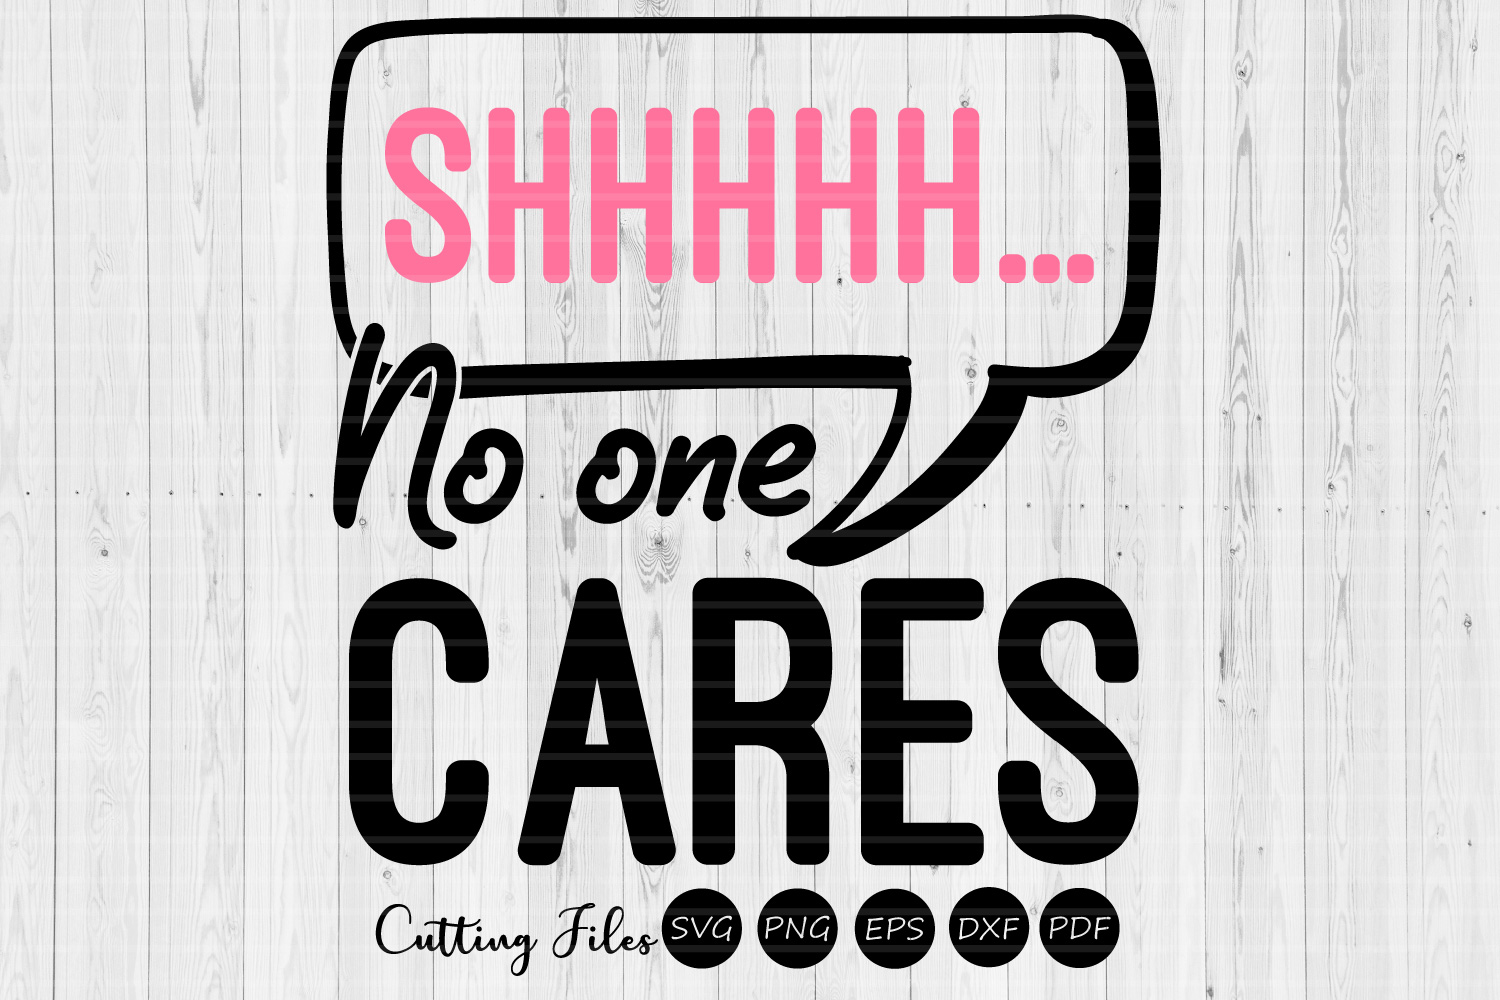 Download Free Shhh No One Cares Design Sassy Svg Graphic By Hd Art Workshop for Cricut Explore, Silhouette and other cutting machines.